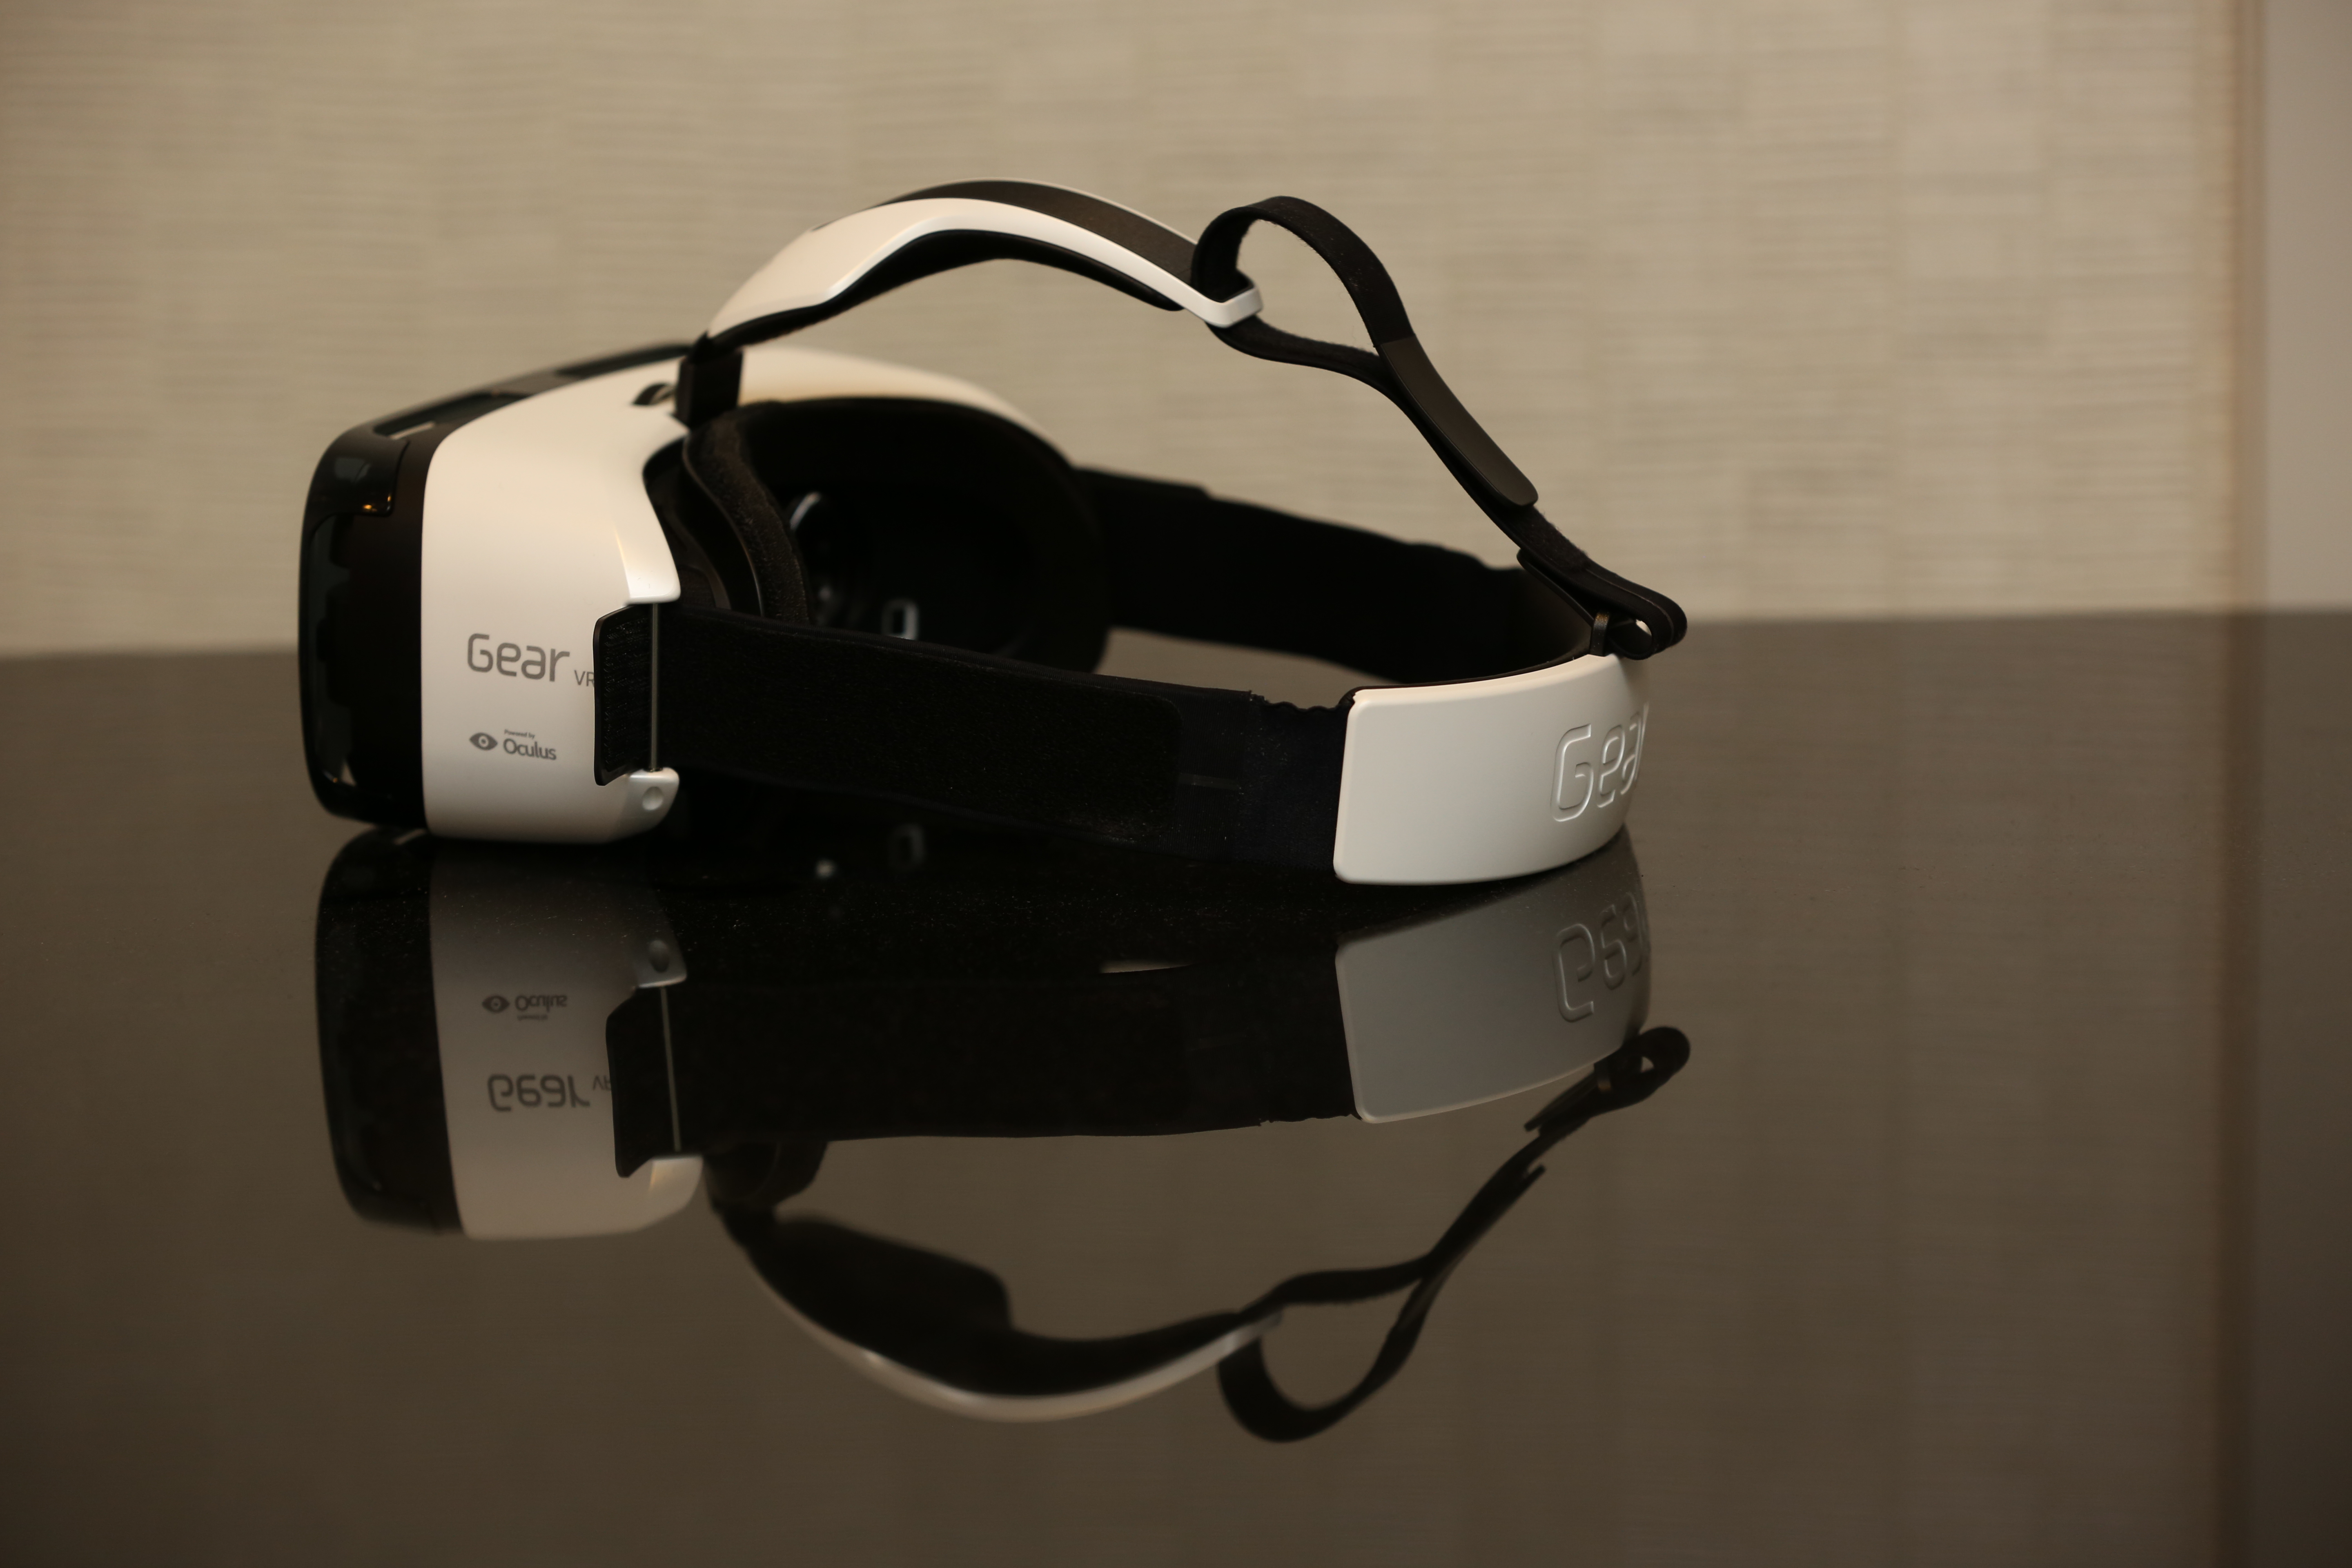 69fa92481ae1 Gear VR is a two-part system  The Samsung Galaxy Note 4 is dropped into a  standalone